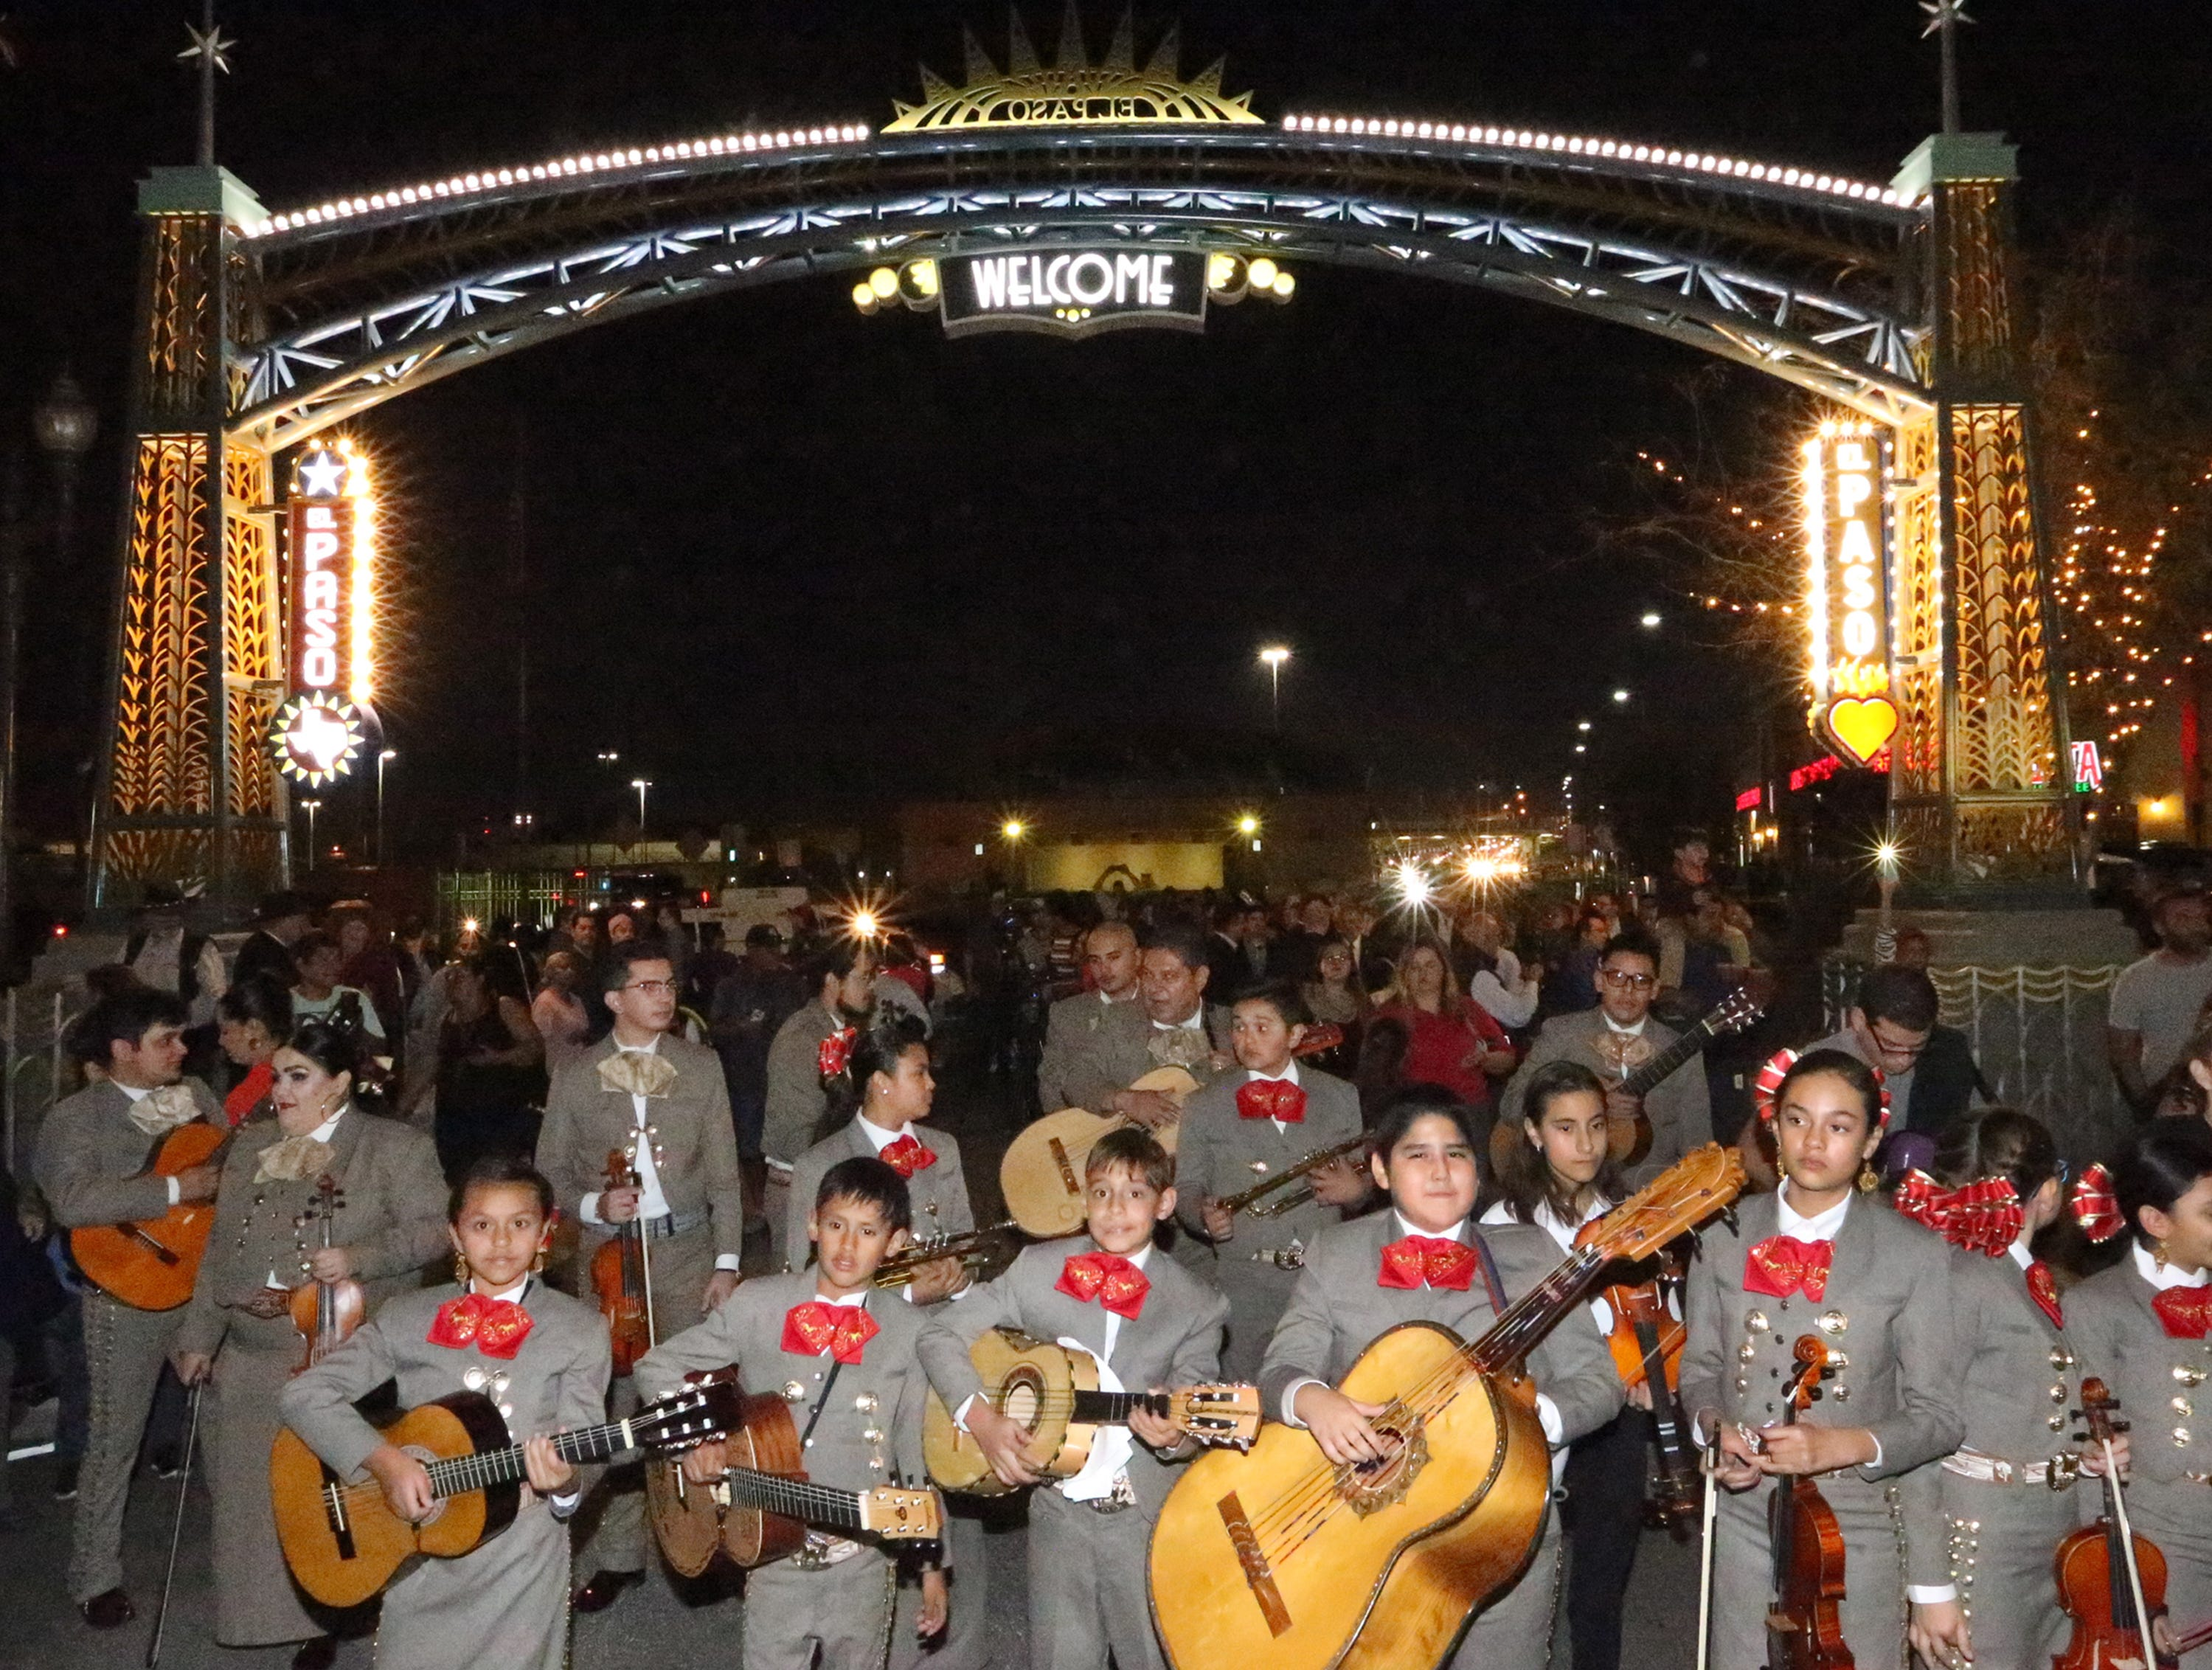 A mariachi group from the La Fe preparatory school were among the performers at the grand opening of the Paseo de Las Luces Wedensday night in South El Paso.